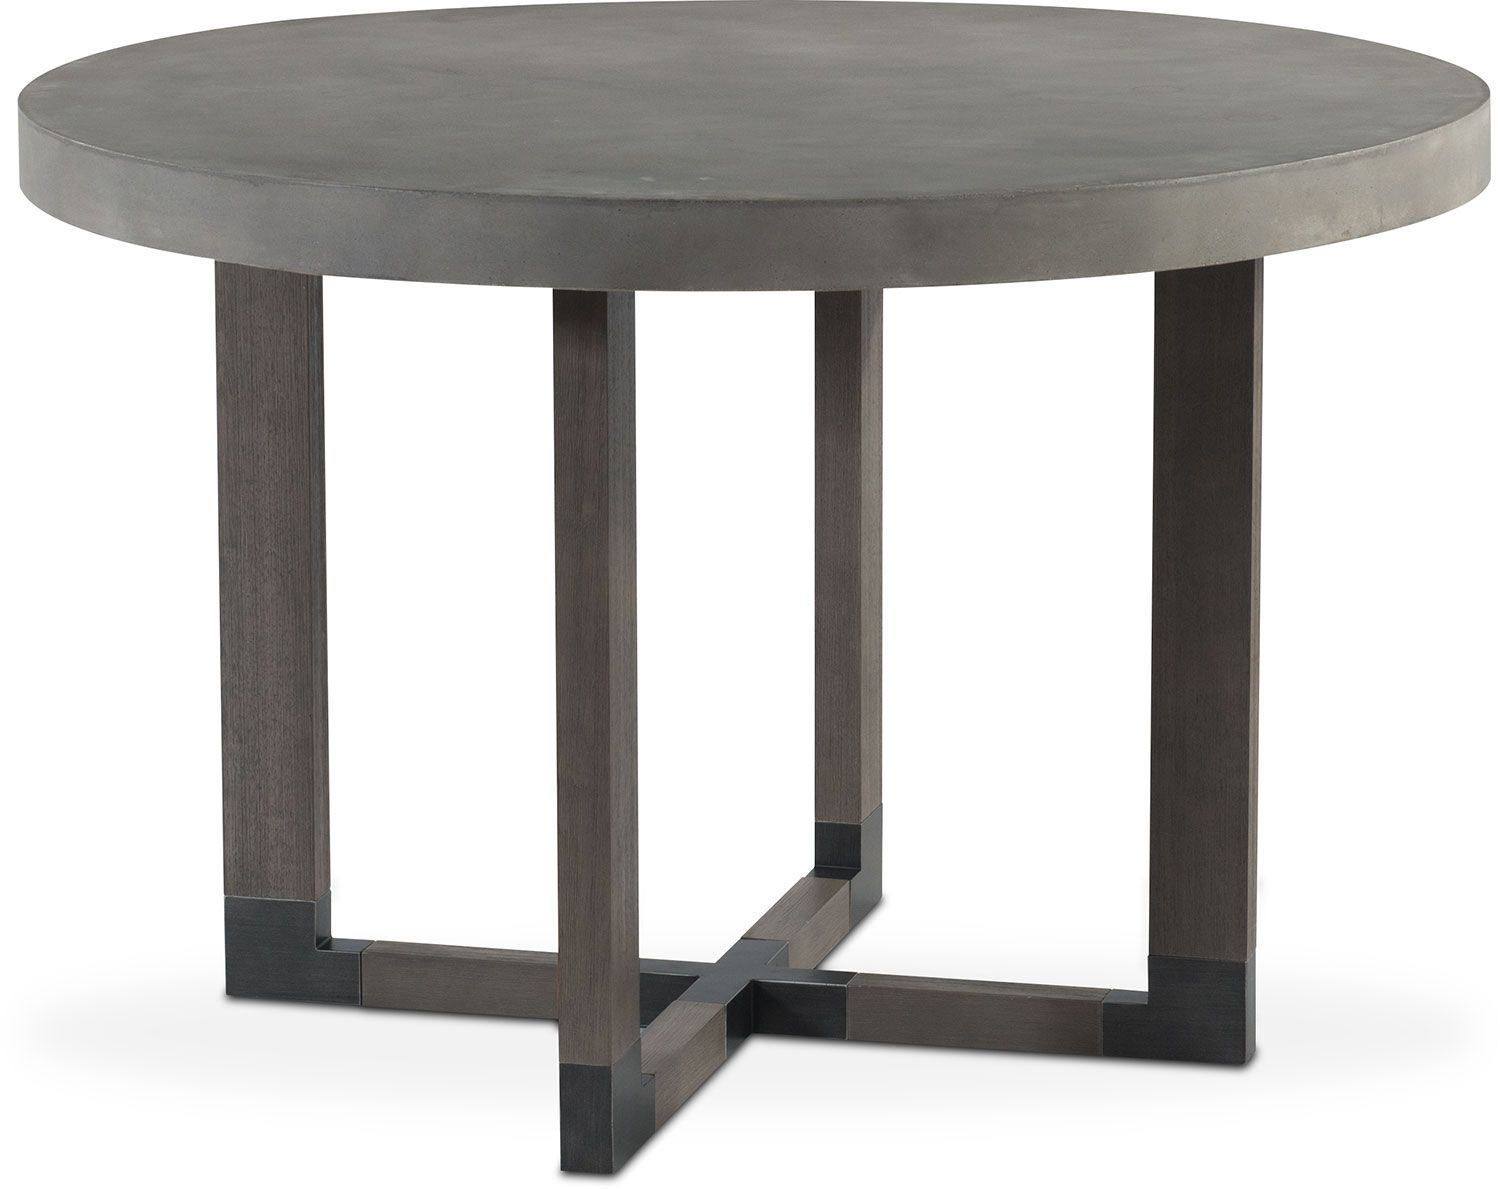 Dining Room Furniture Malibu Round Counter Height Concrete Top